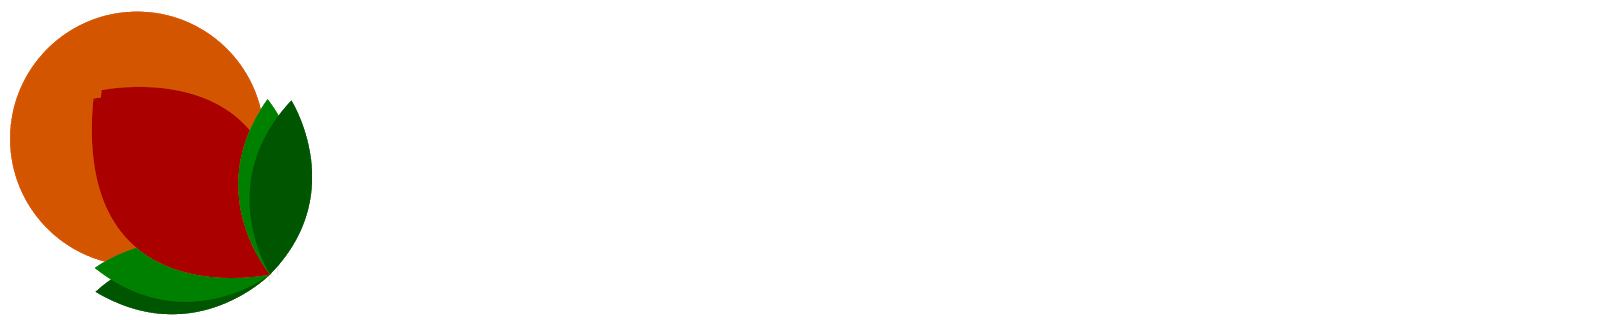 The Bibliophilic Blog